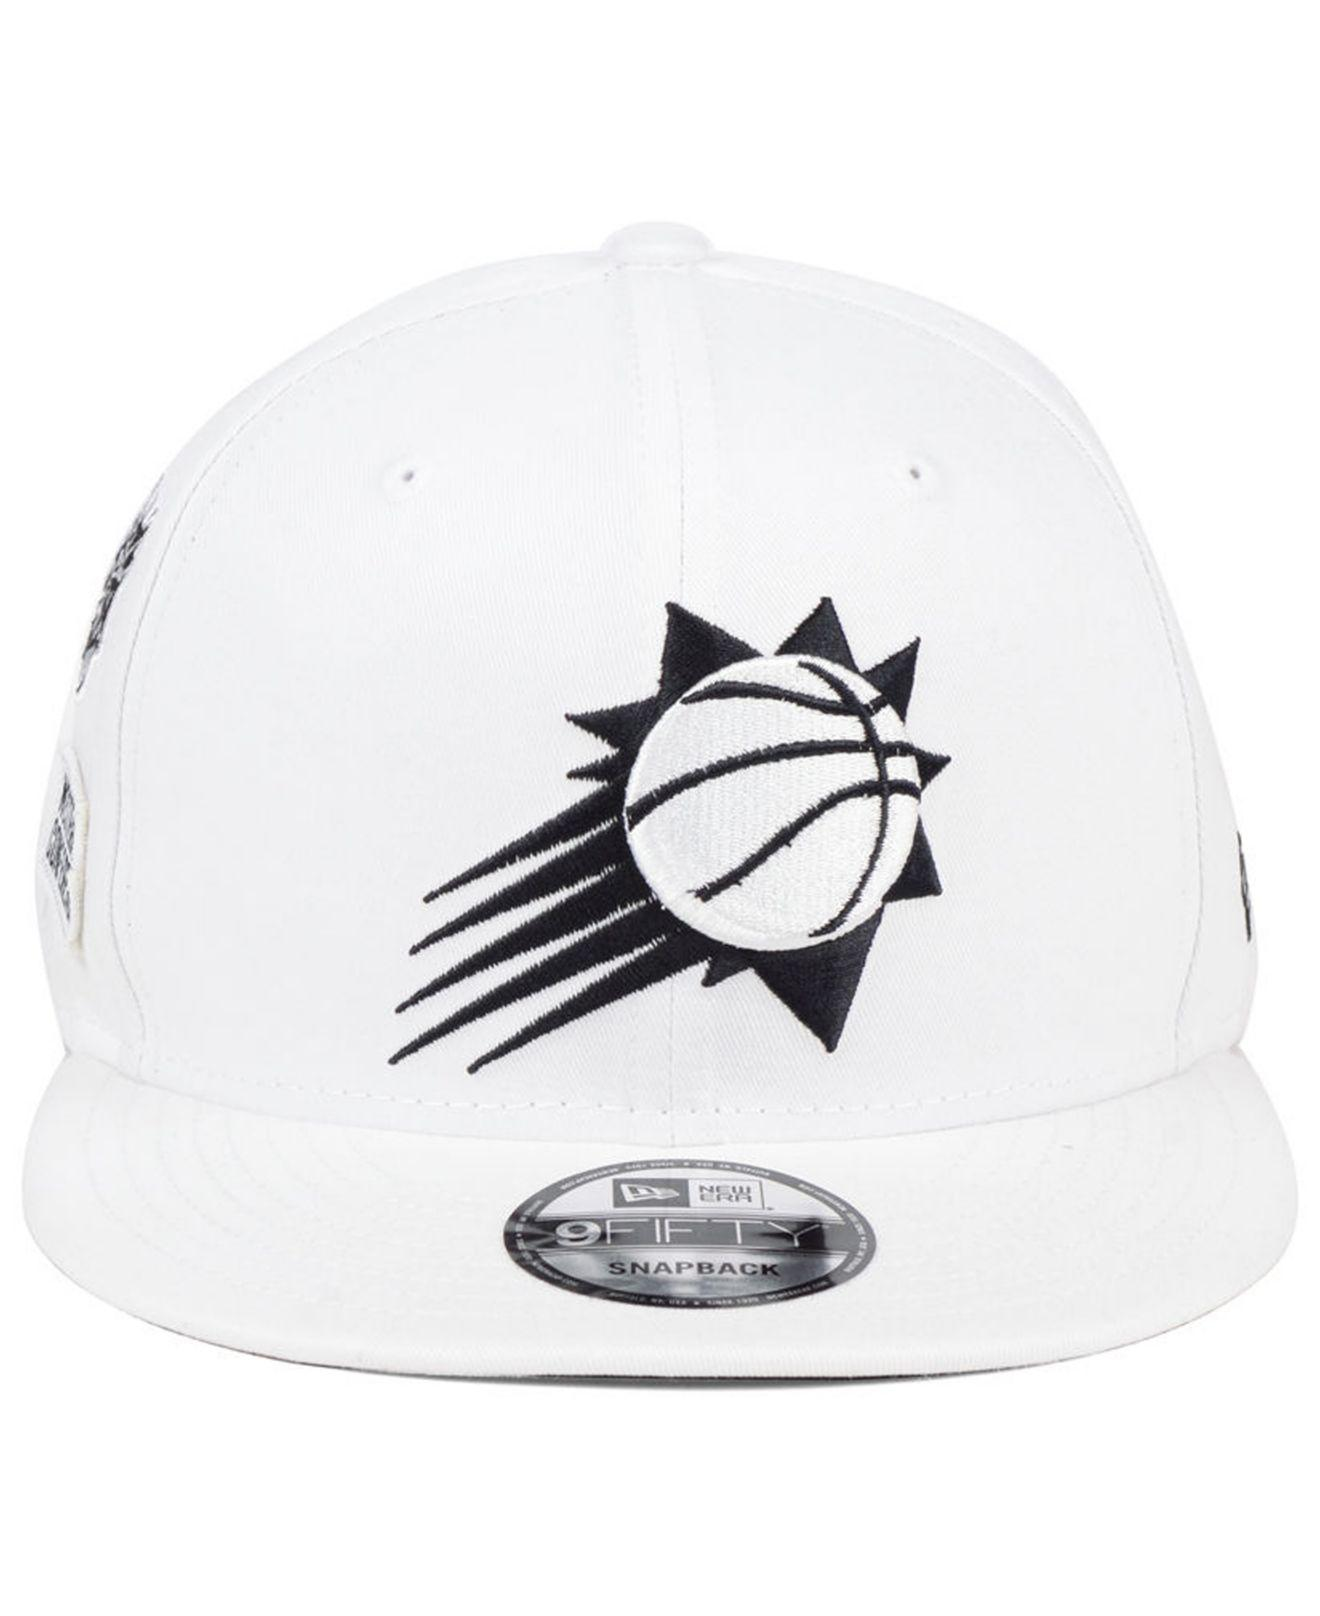 size 40 cf74b e1267 ... wholesale lyst ktz phoenix suns night sky 9fifty snapback cap in white  for men 4ceda c0518